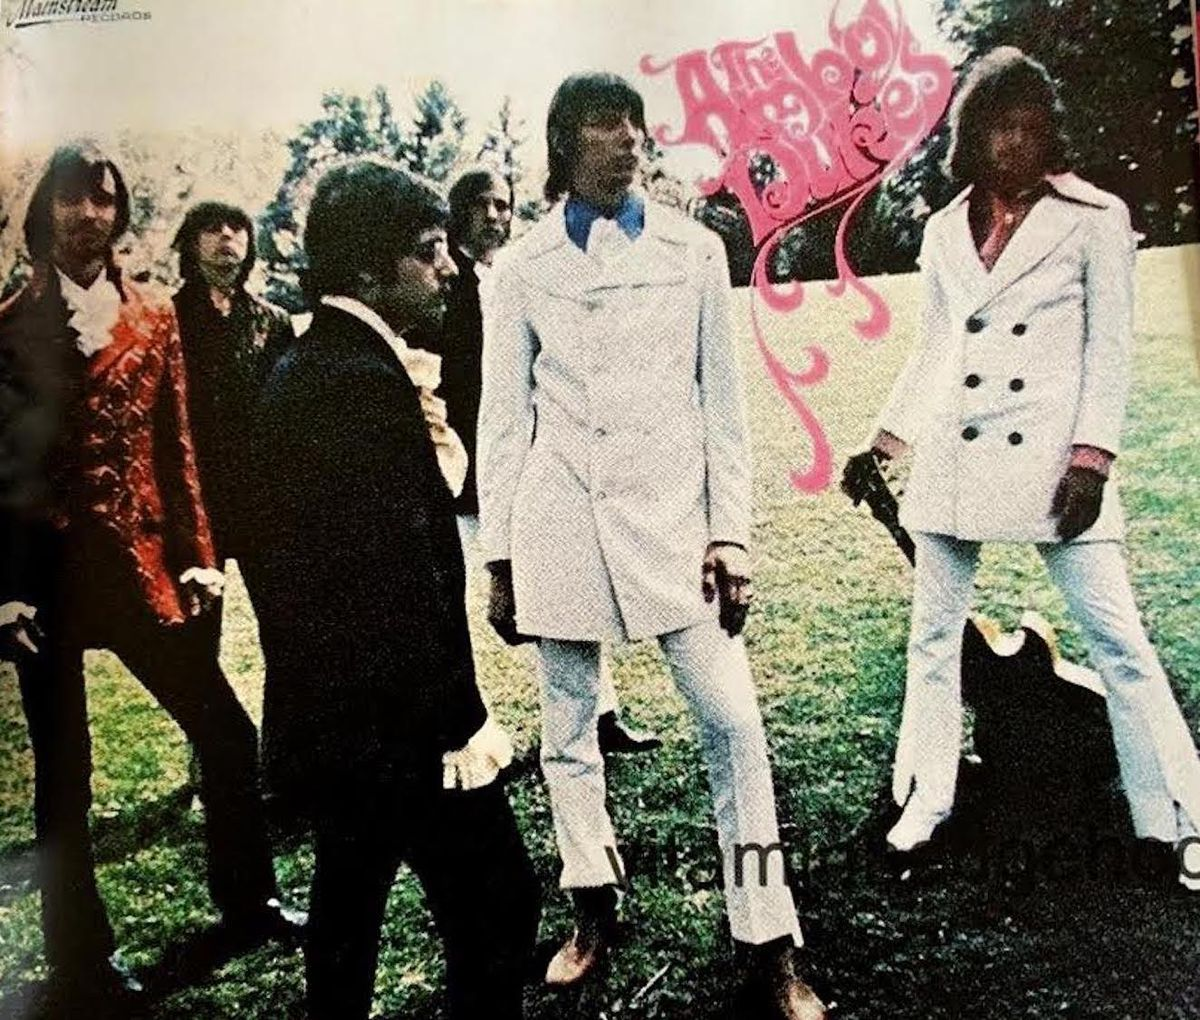 The Amboy Dukes in their heyday, including John Drake (center, in white suit) and Ted Nugent (at right, also in white).